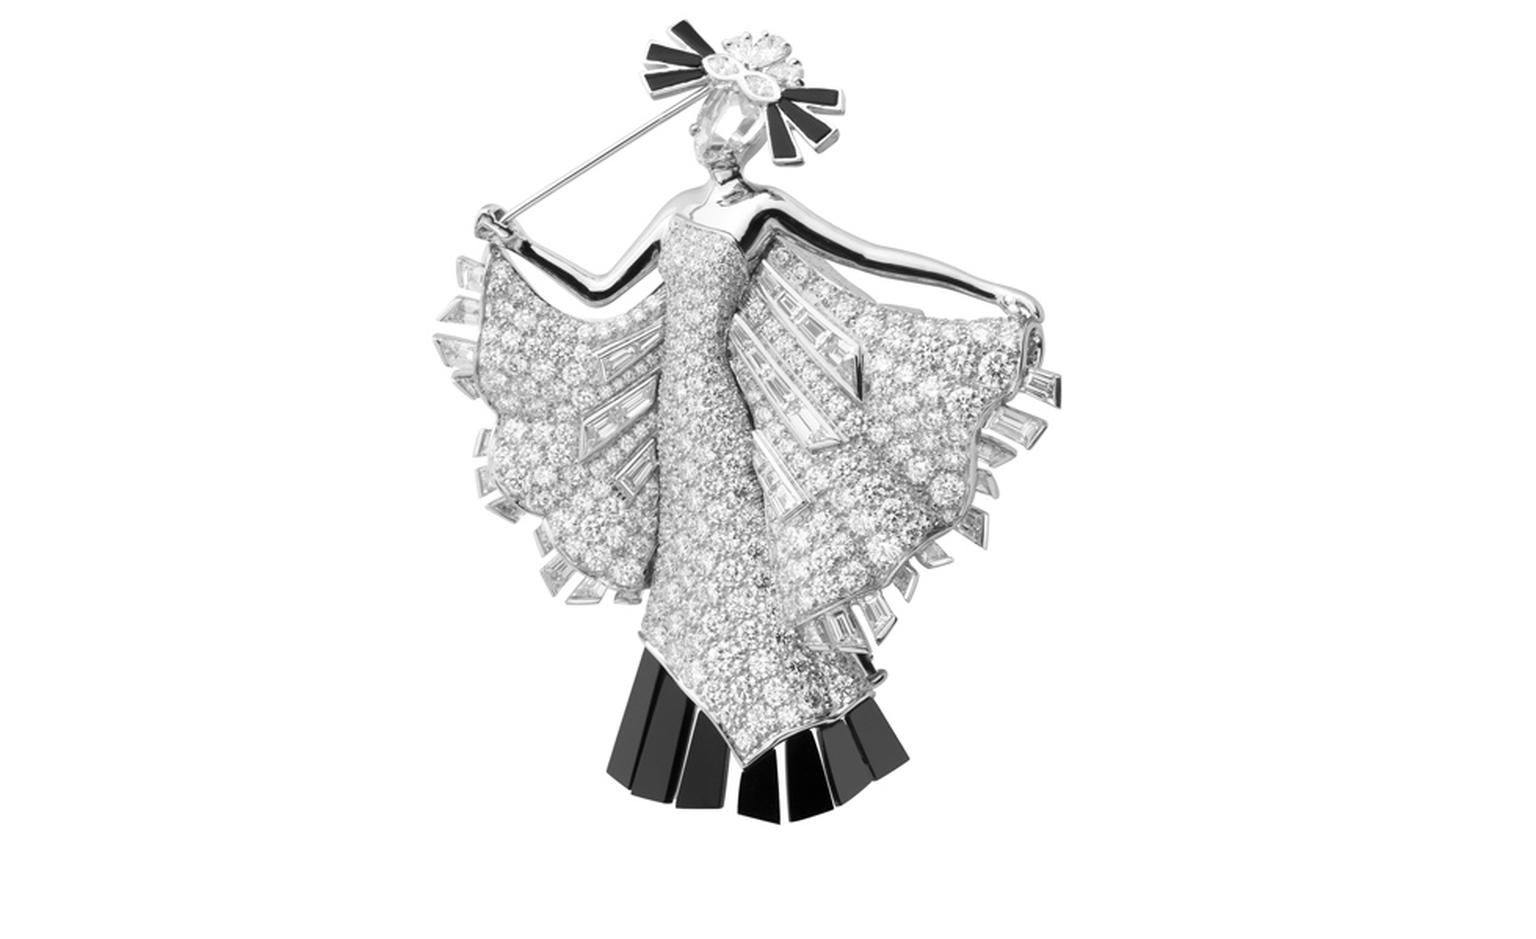 Van Cleef & Arpels, Bals de Légende, Le Bal Black and White, Diamond decor clip.